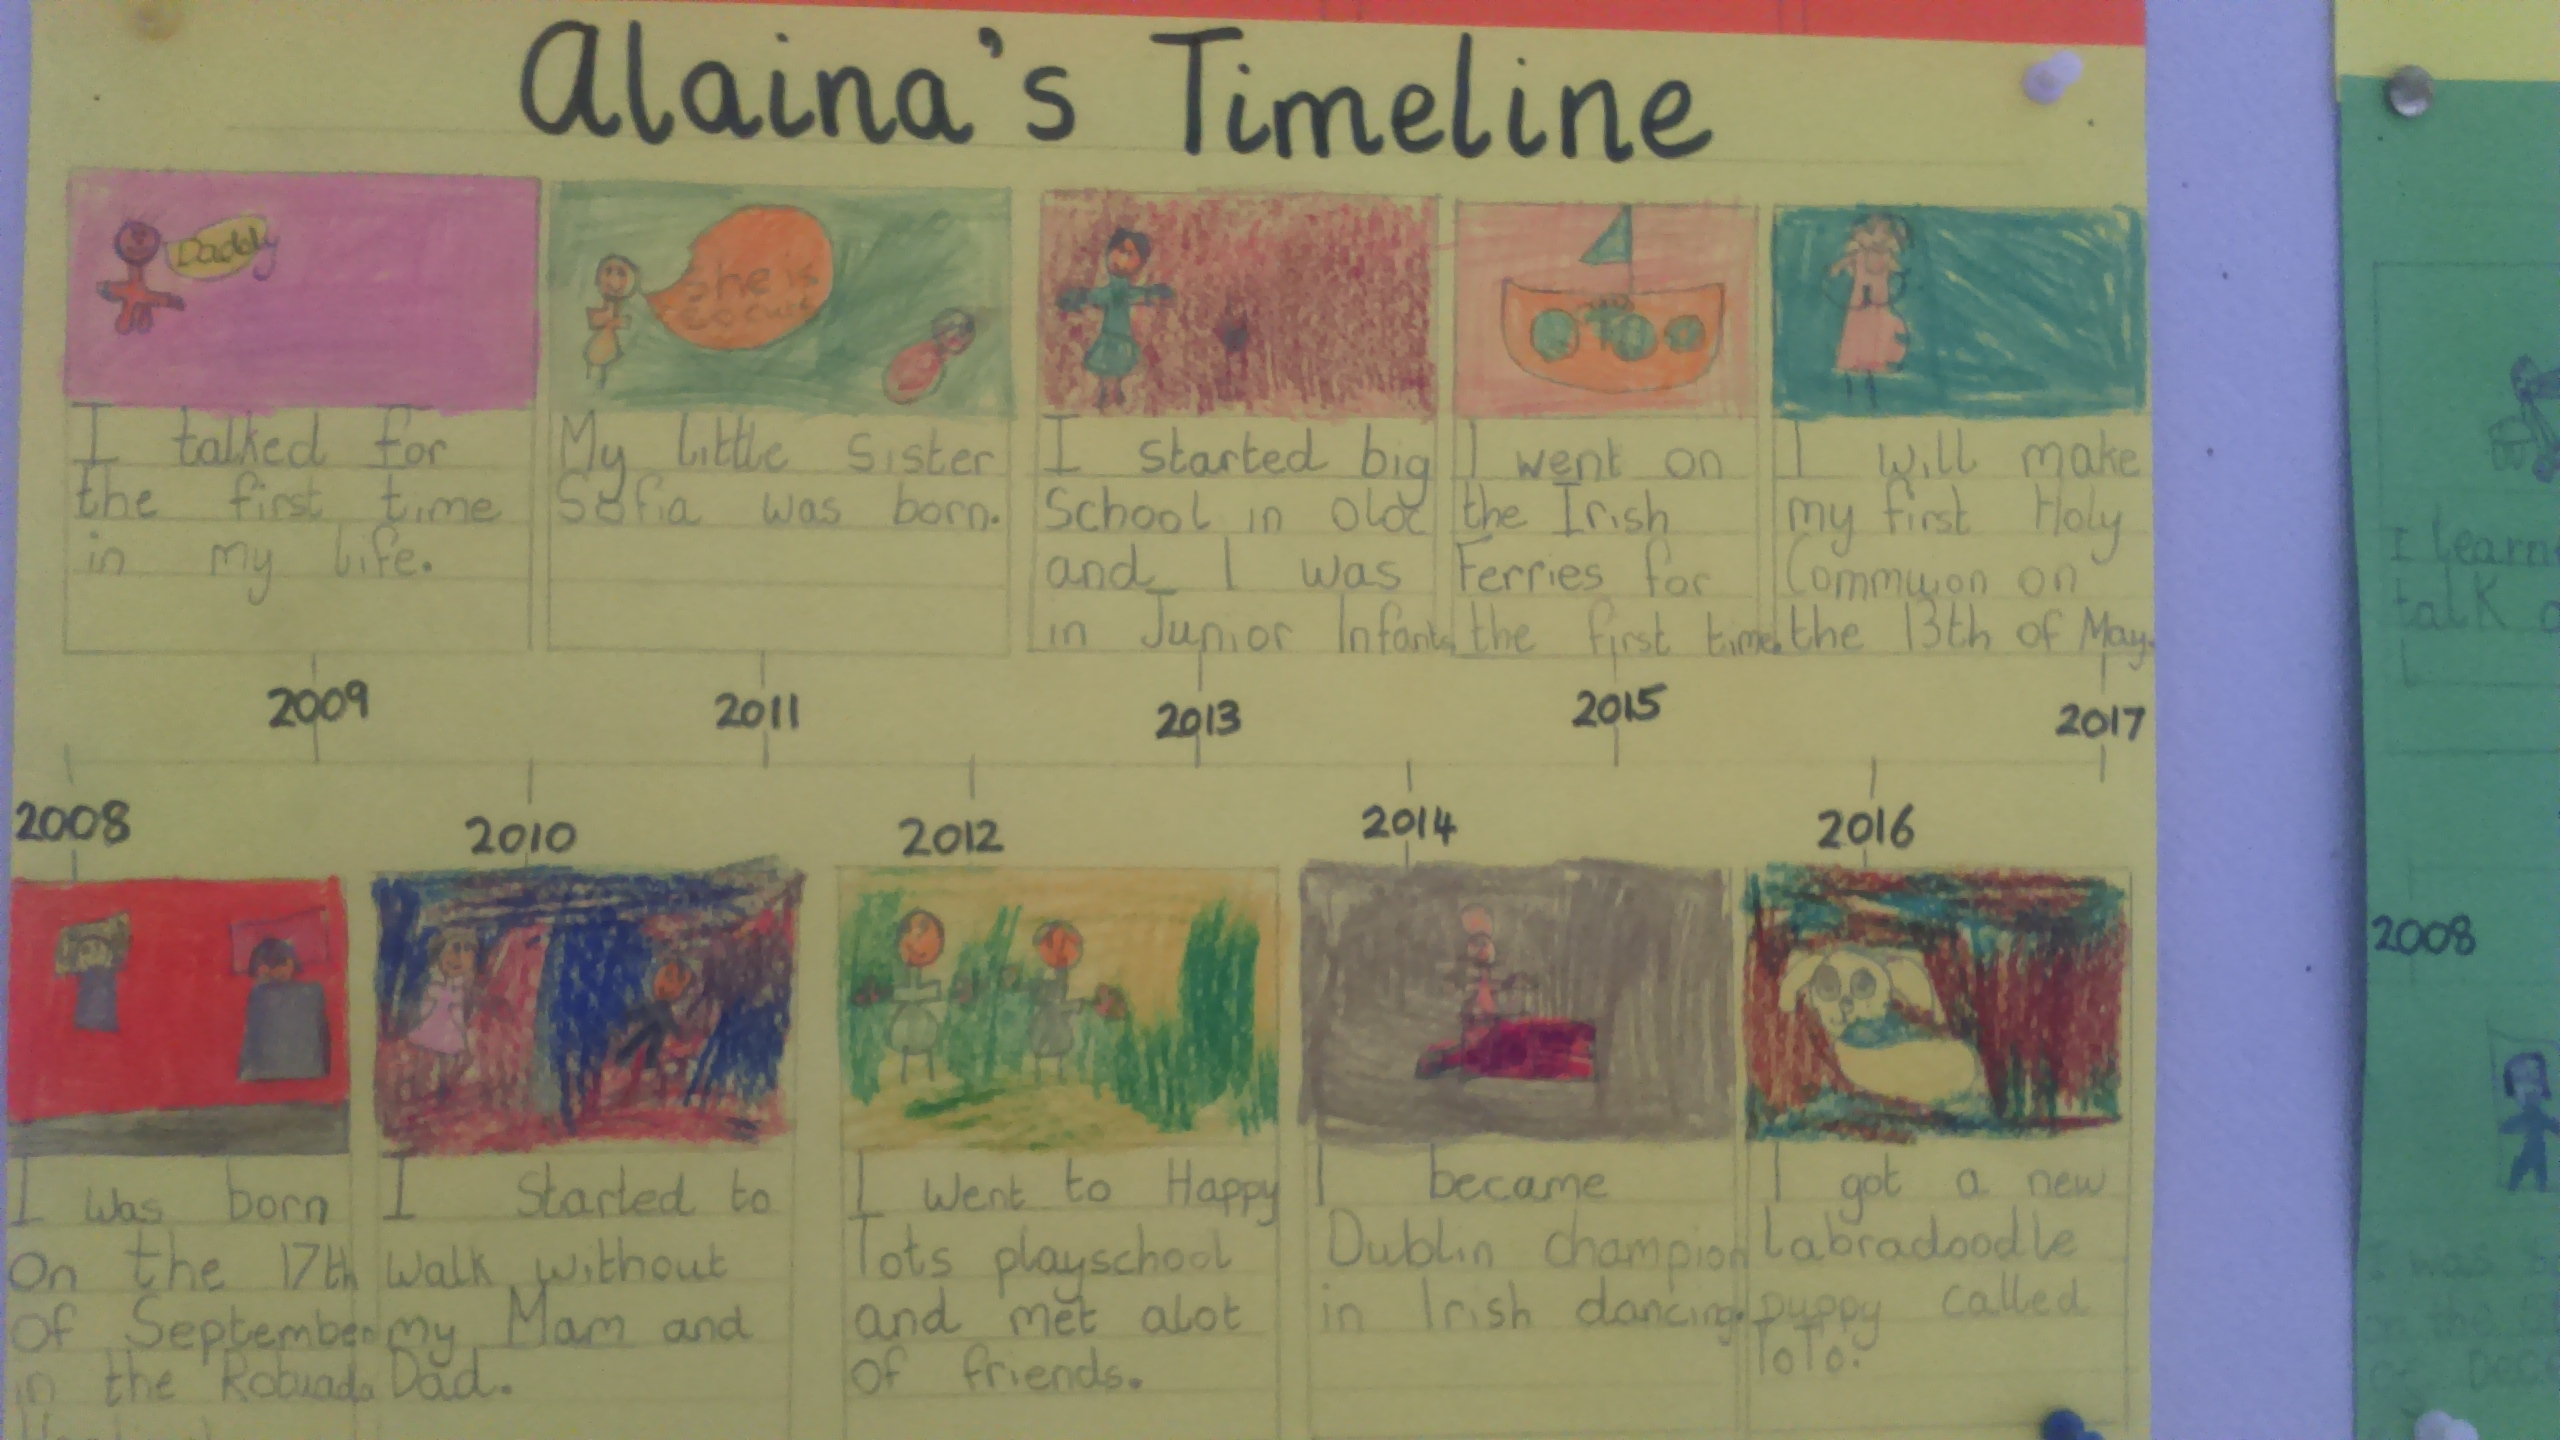 Second Class' Timelines - Our Lady of Consolation National School